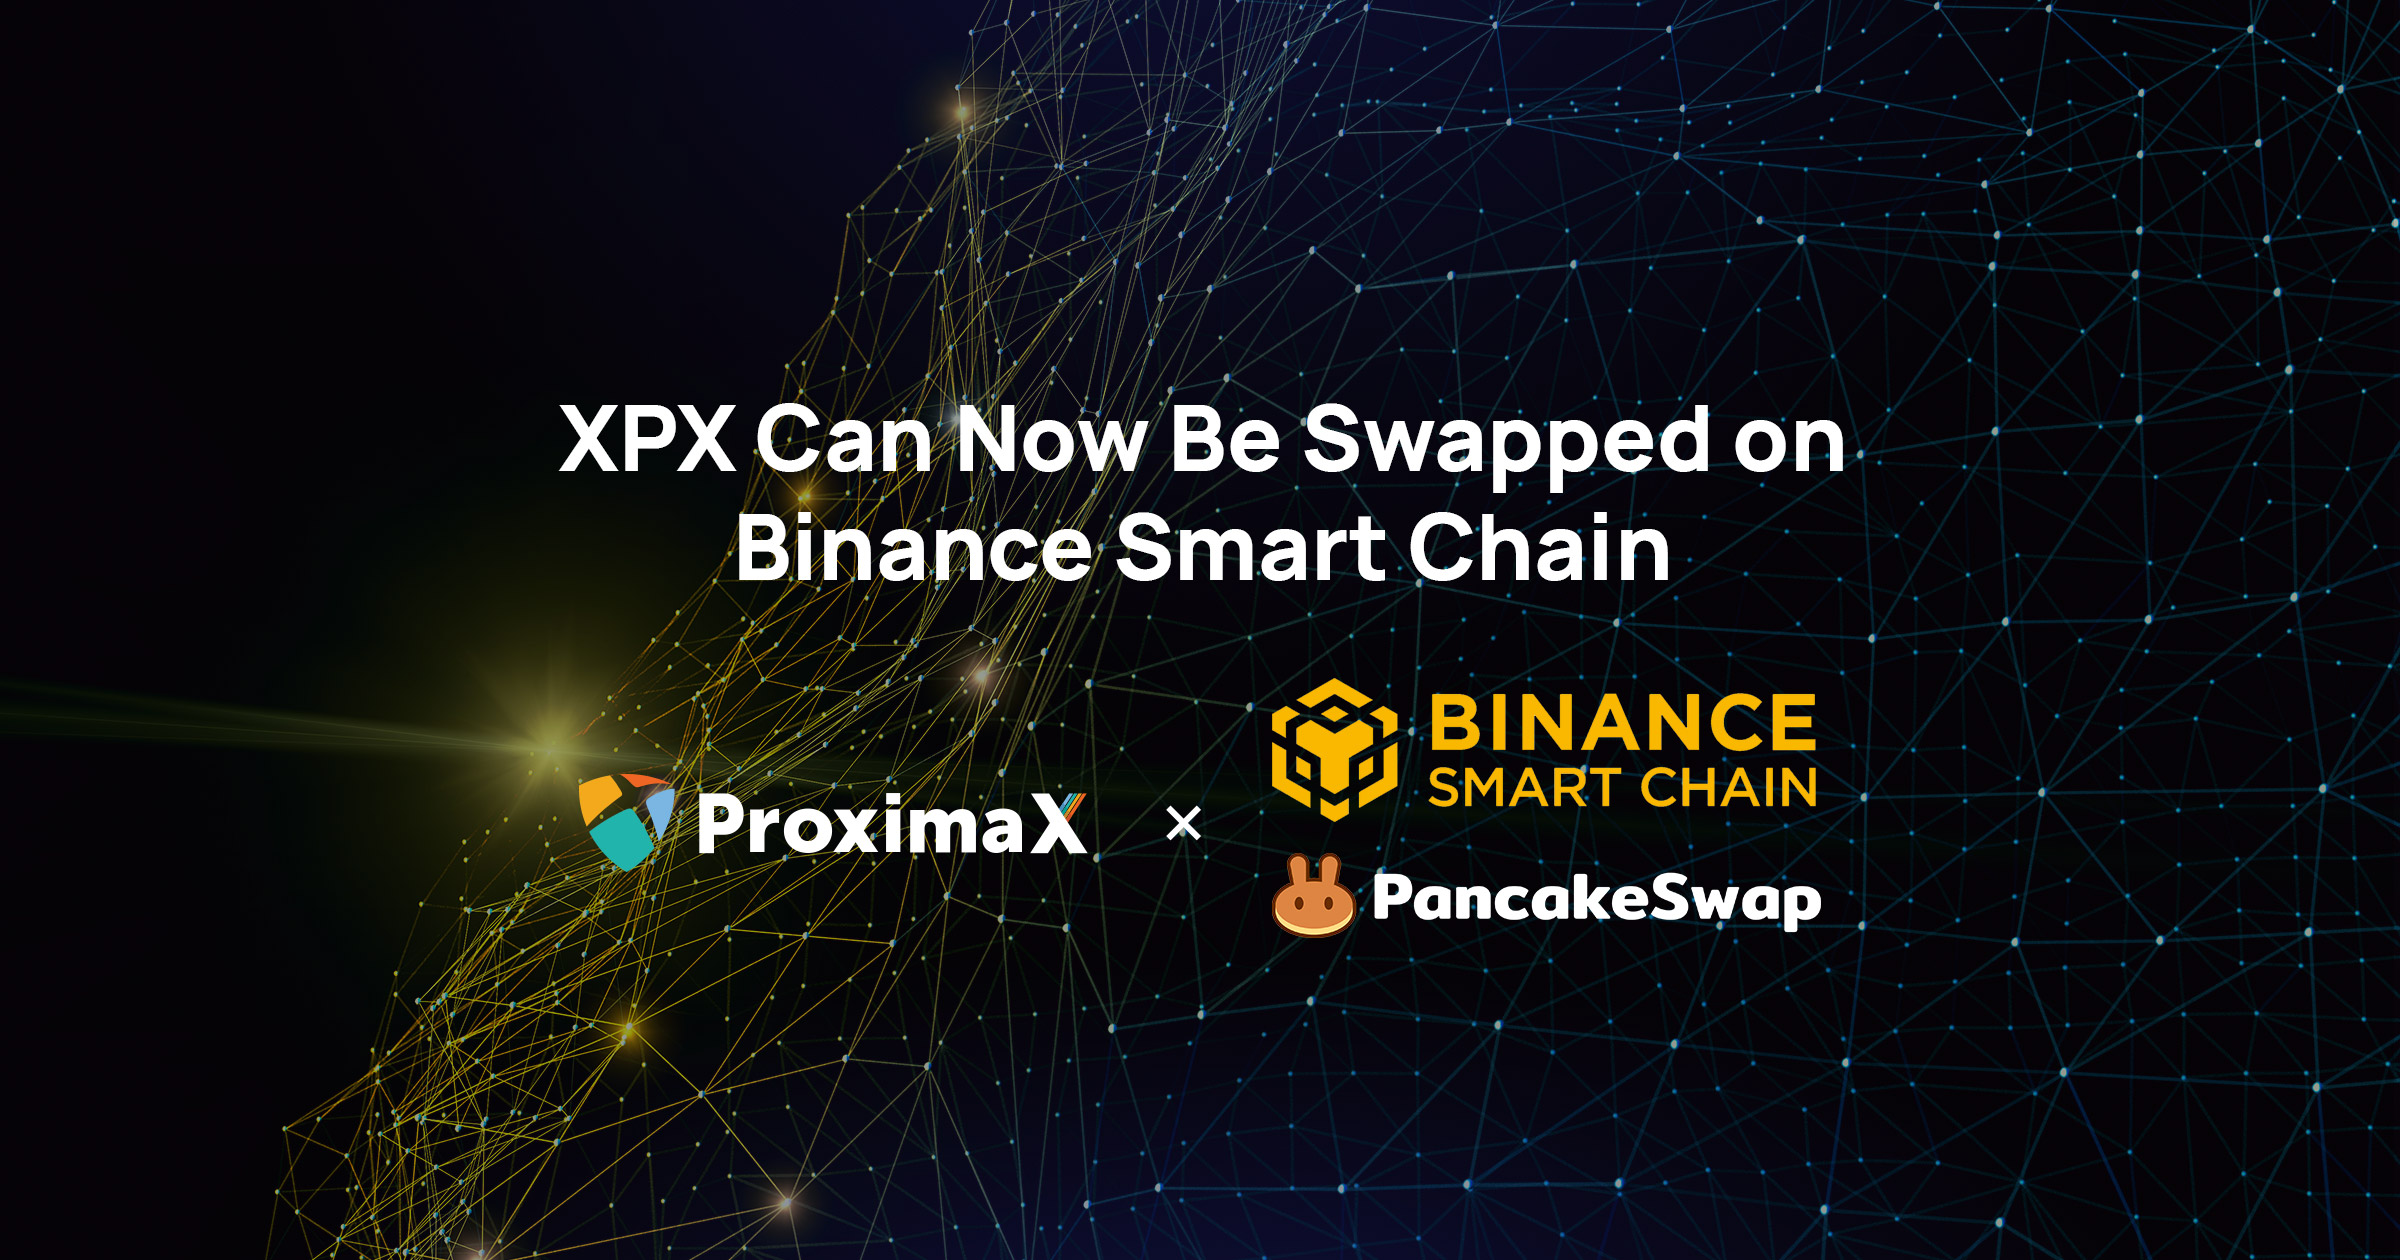 XPX CAN NOW BE SWAPPED ON BINANCE SMART CHAIN